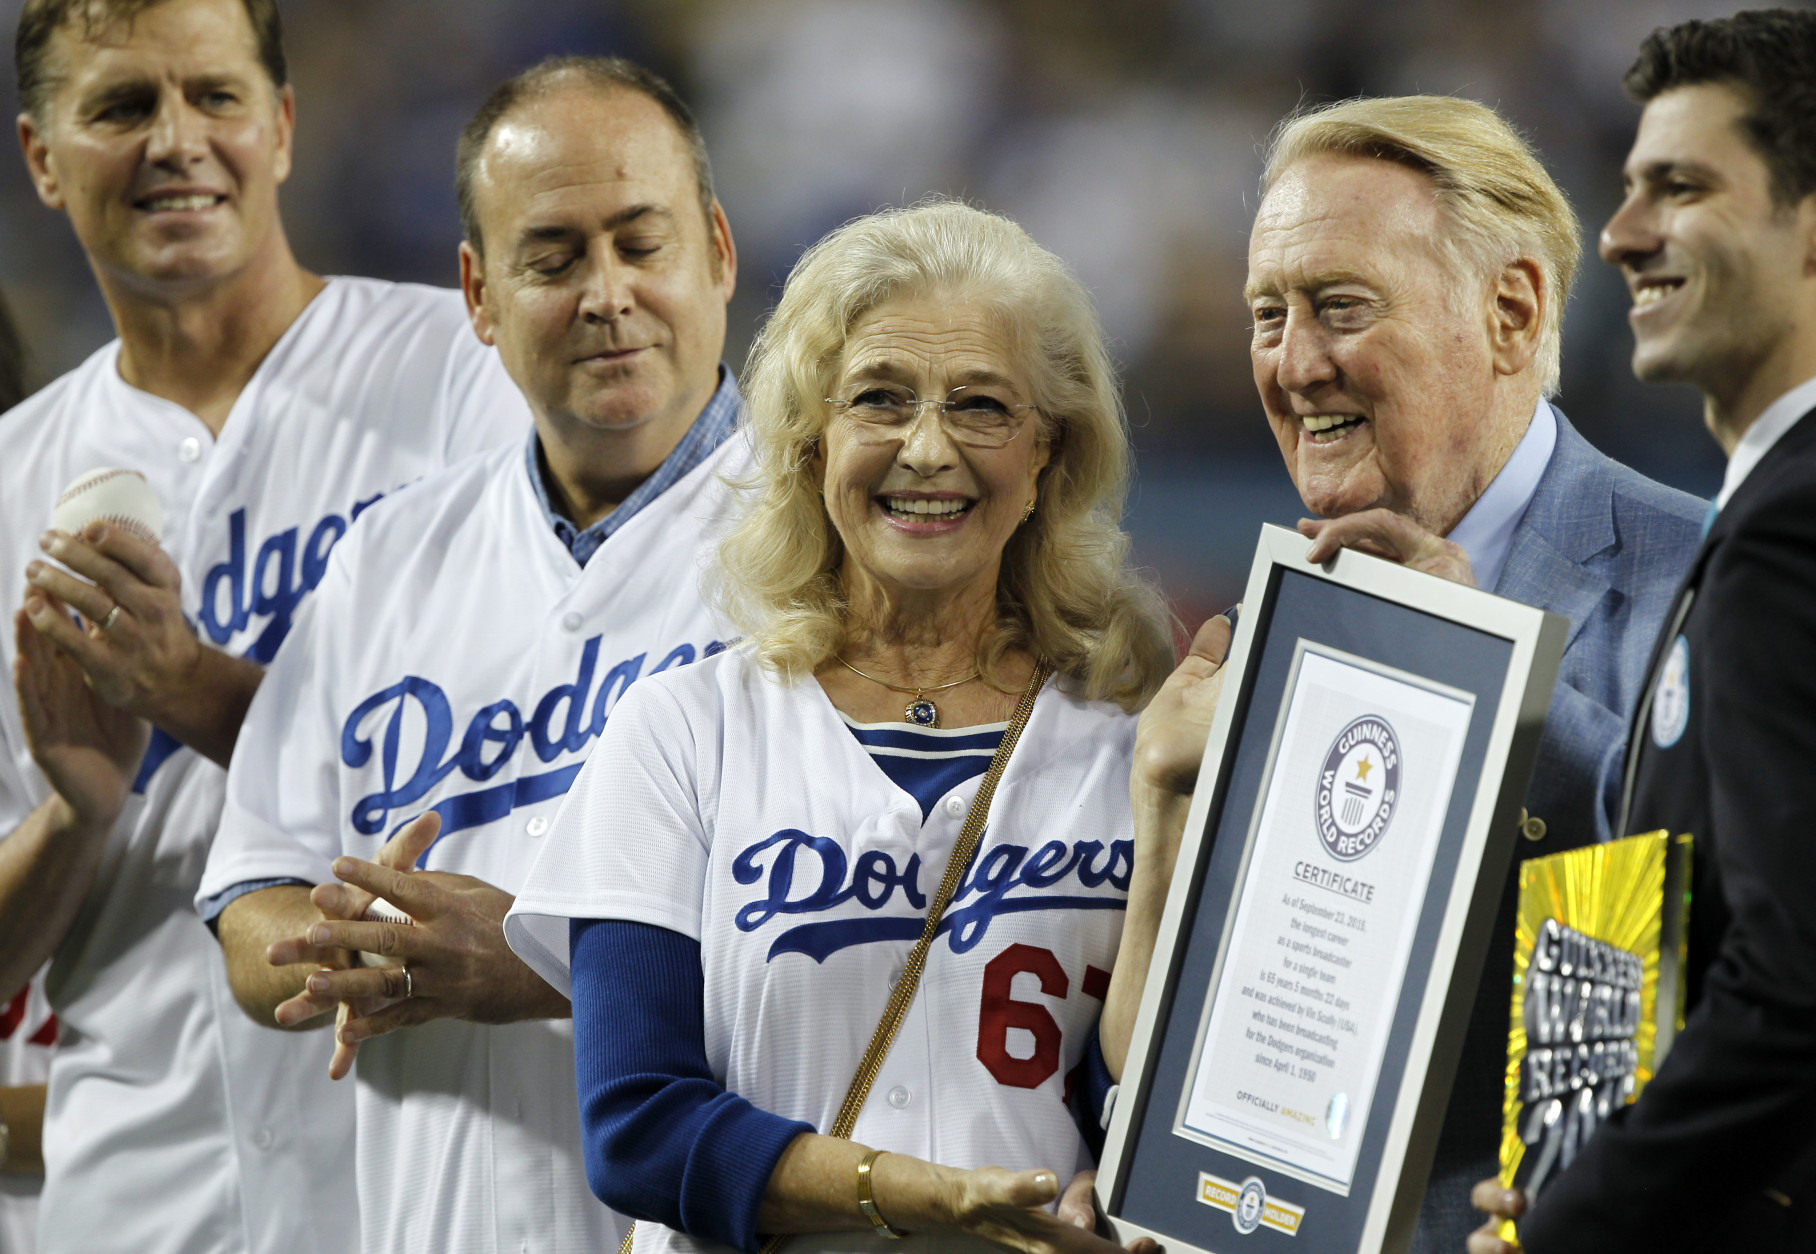 Los Angeles Dodgers broadcaster Vin Scully, second from right, is honored, with his wife Sandi Scuilly, and sons Kevin and Todd Scully, far left, before a baseball game against the Arizona Diamondbacks in Los Angeles, Wednesday, Sept. 23, 2015. Vin Scully was given a Guinness World Records certificate for the longest career as a sports broadcaster for a single team. (AP Photo/Alex Gallardo)